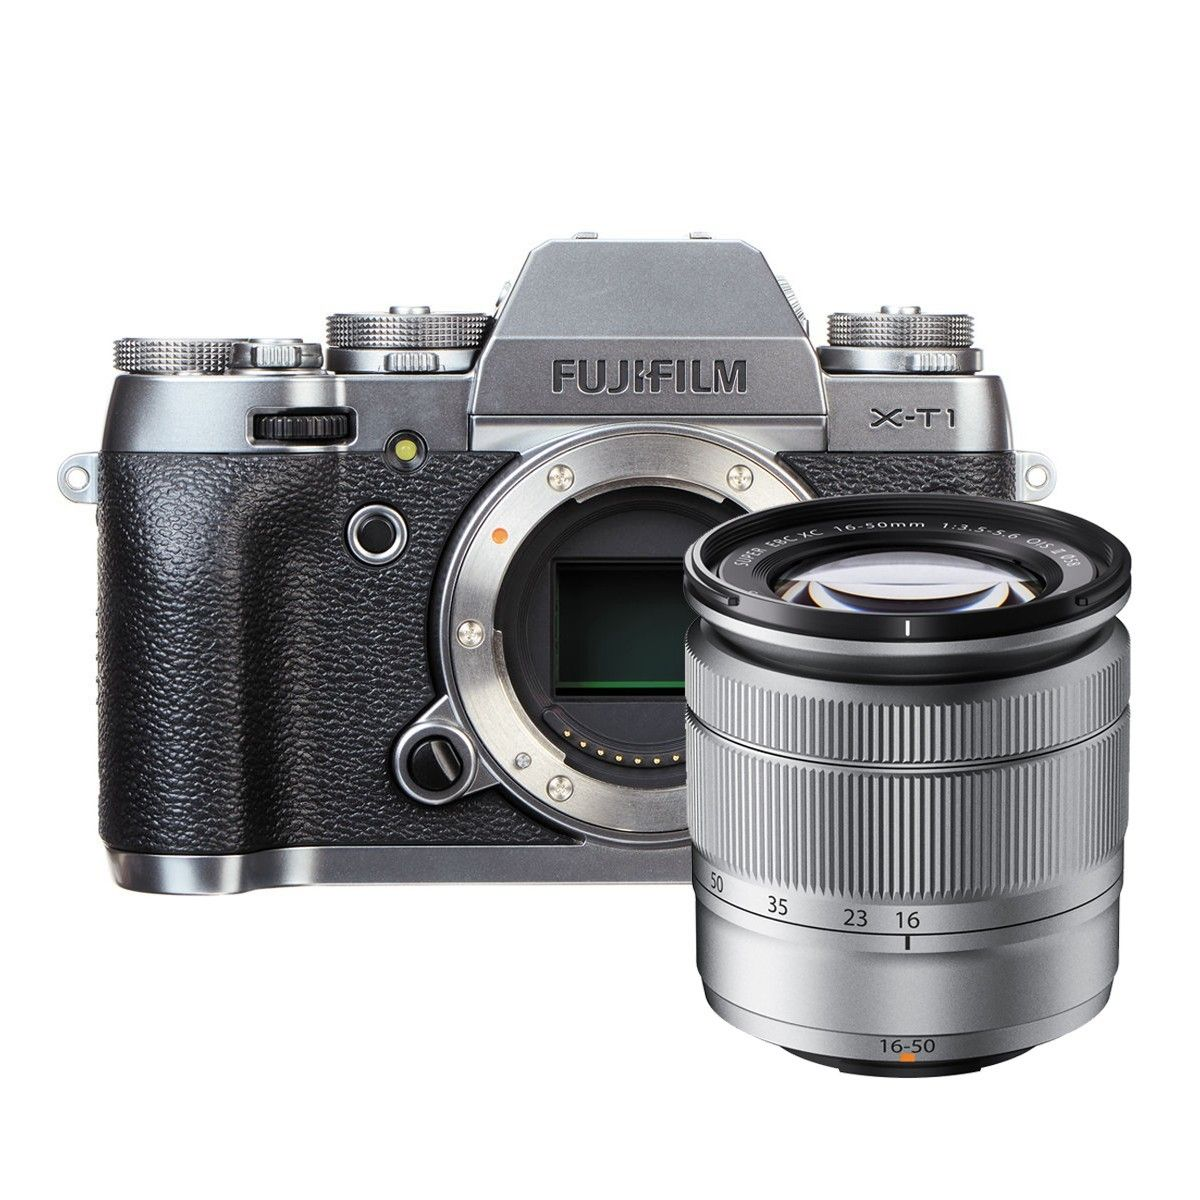 Harga Dan Spek Fujifilm X T20 16 50mm Silver Termurah 2018 A5 Kit 15 45mm F35 56 Ois Pz Dark Pwp Xf F2 T1 Mirrorless Digital Camera With Lens Graphite Edition Contact 0312855877